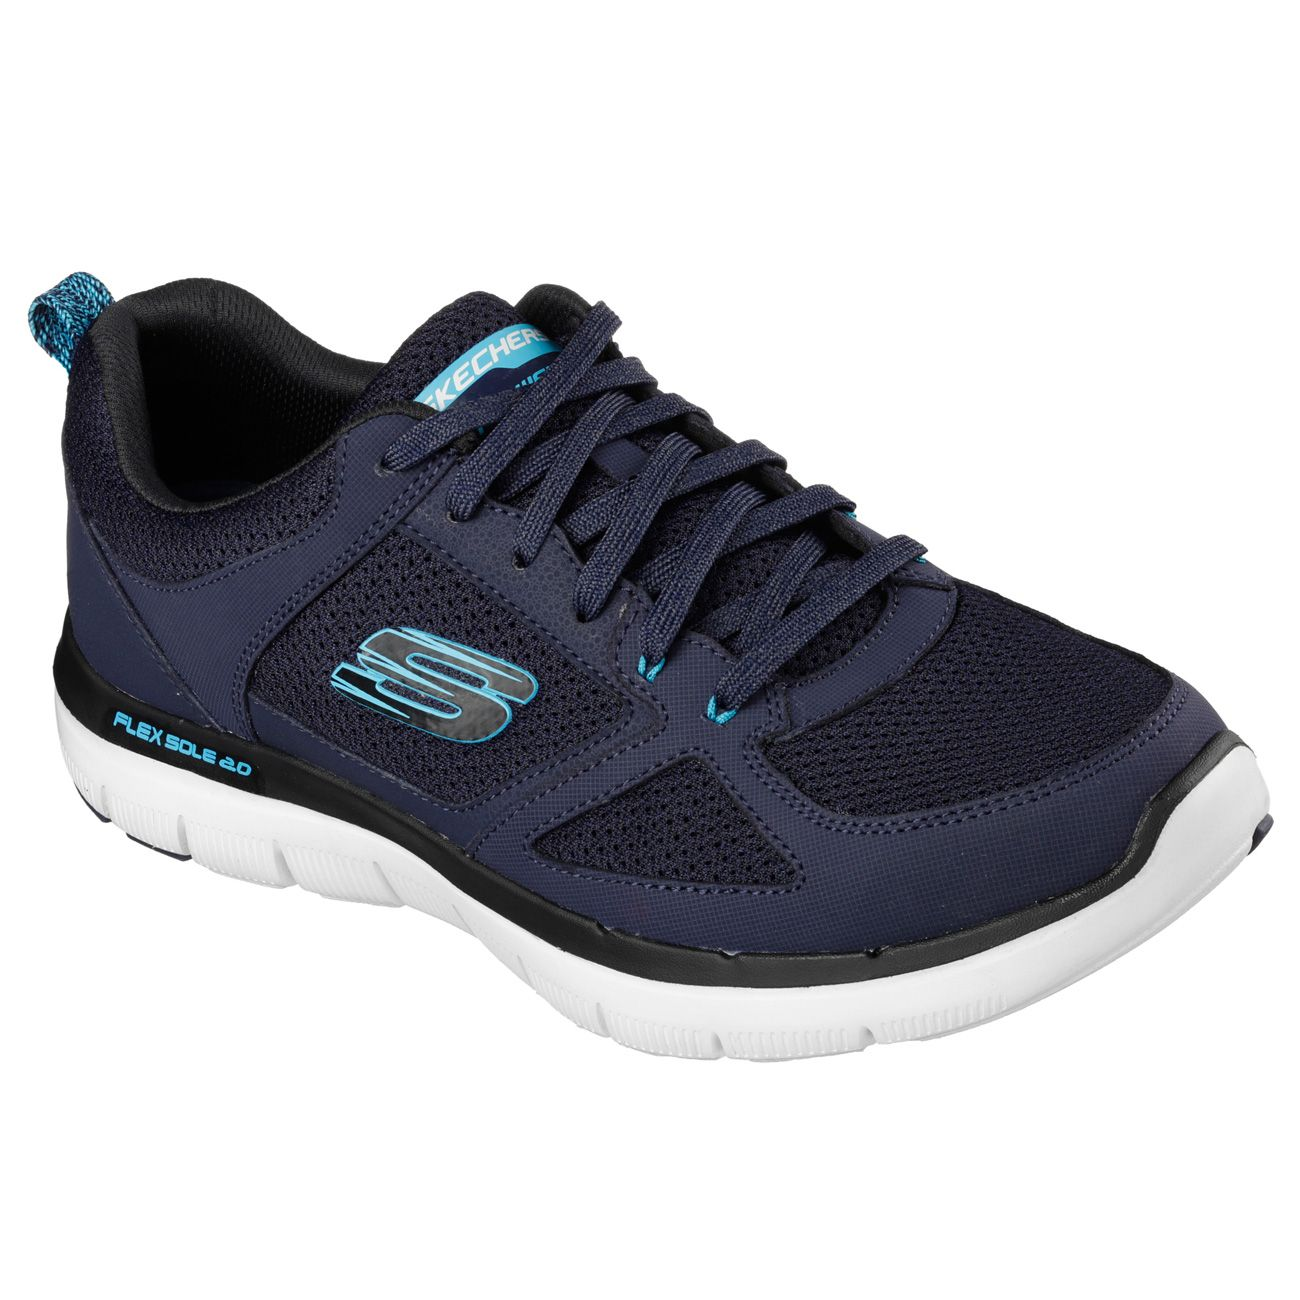 Skechers Athletic Running Shoes